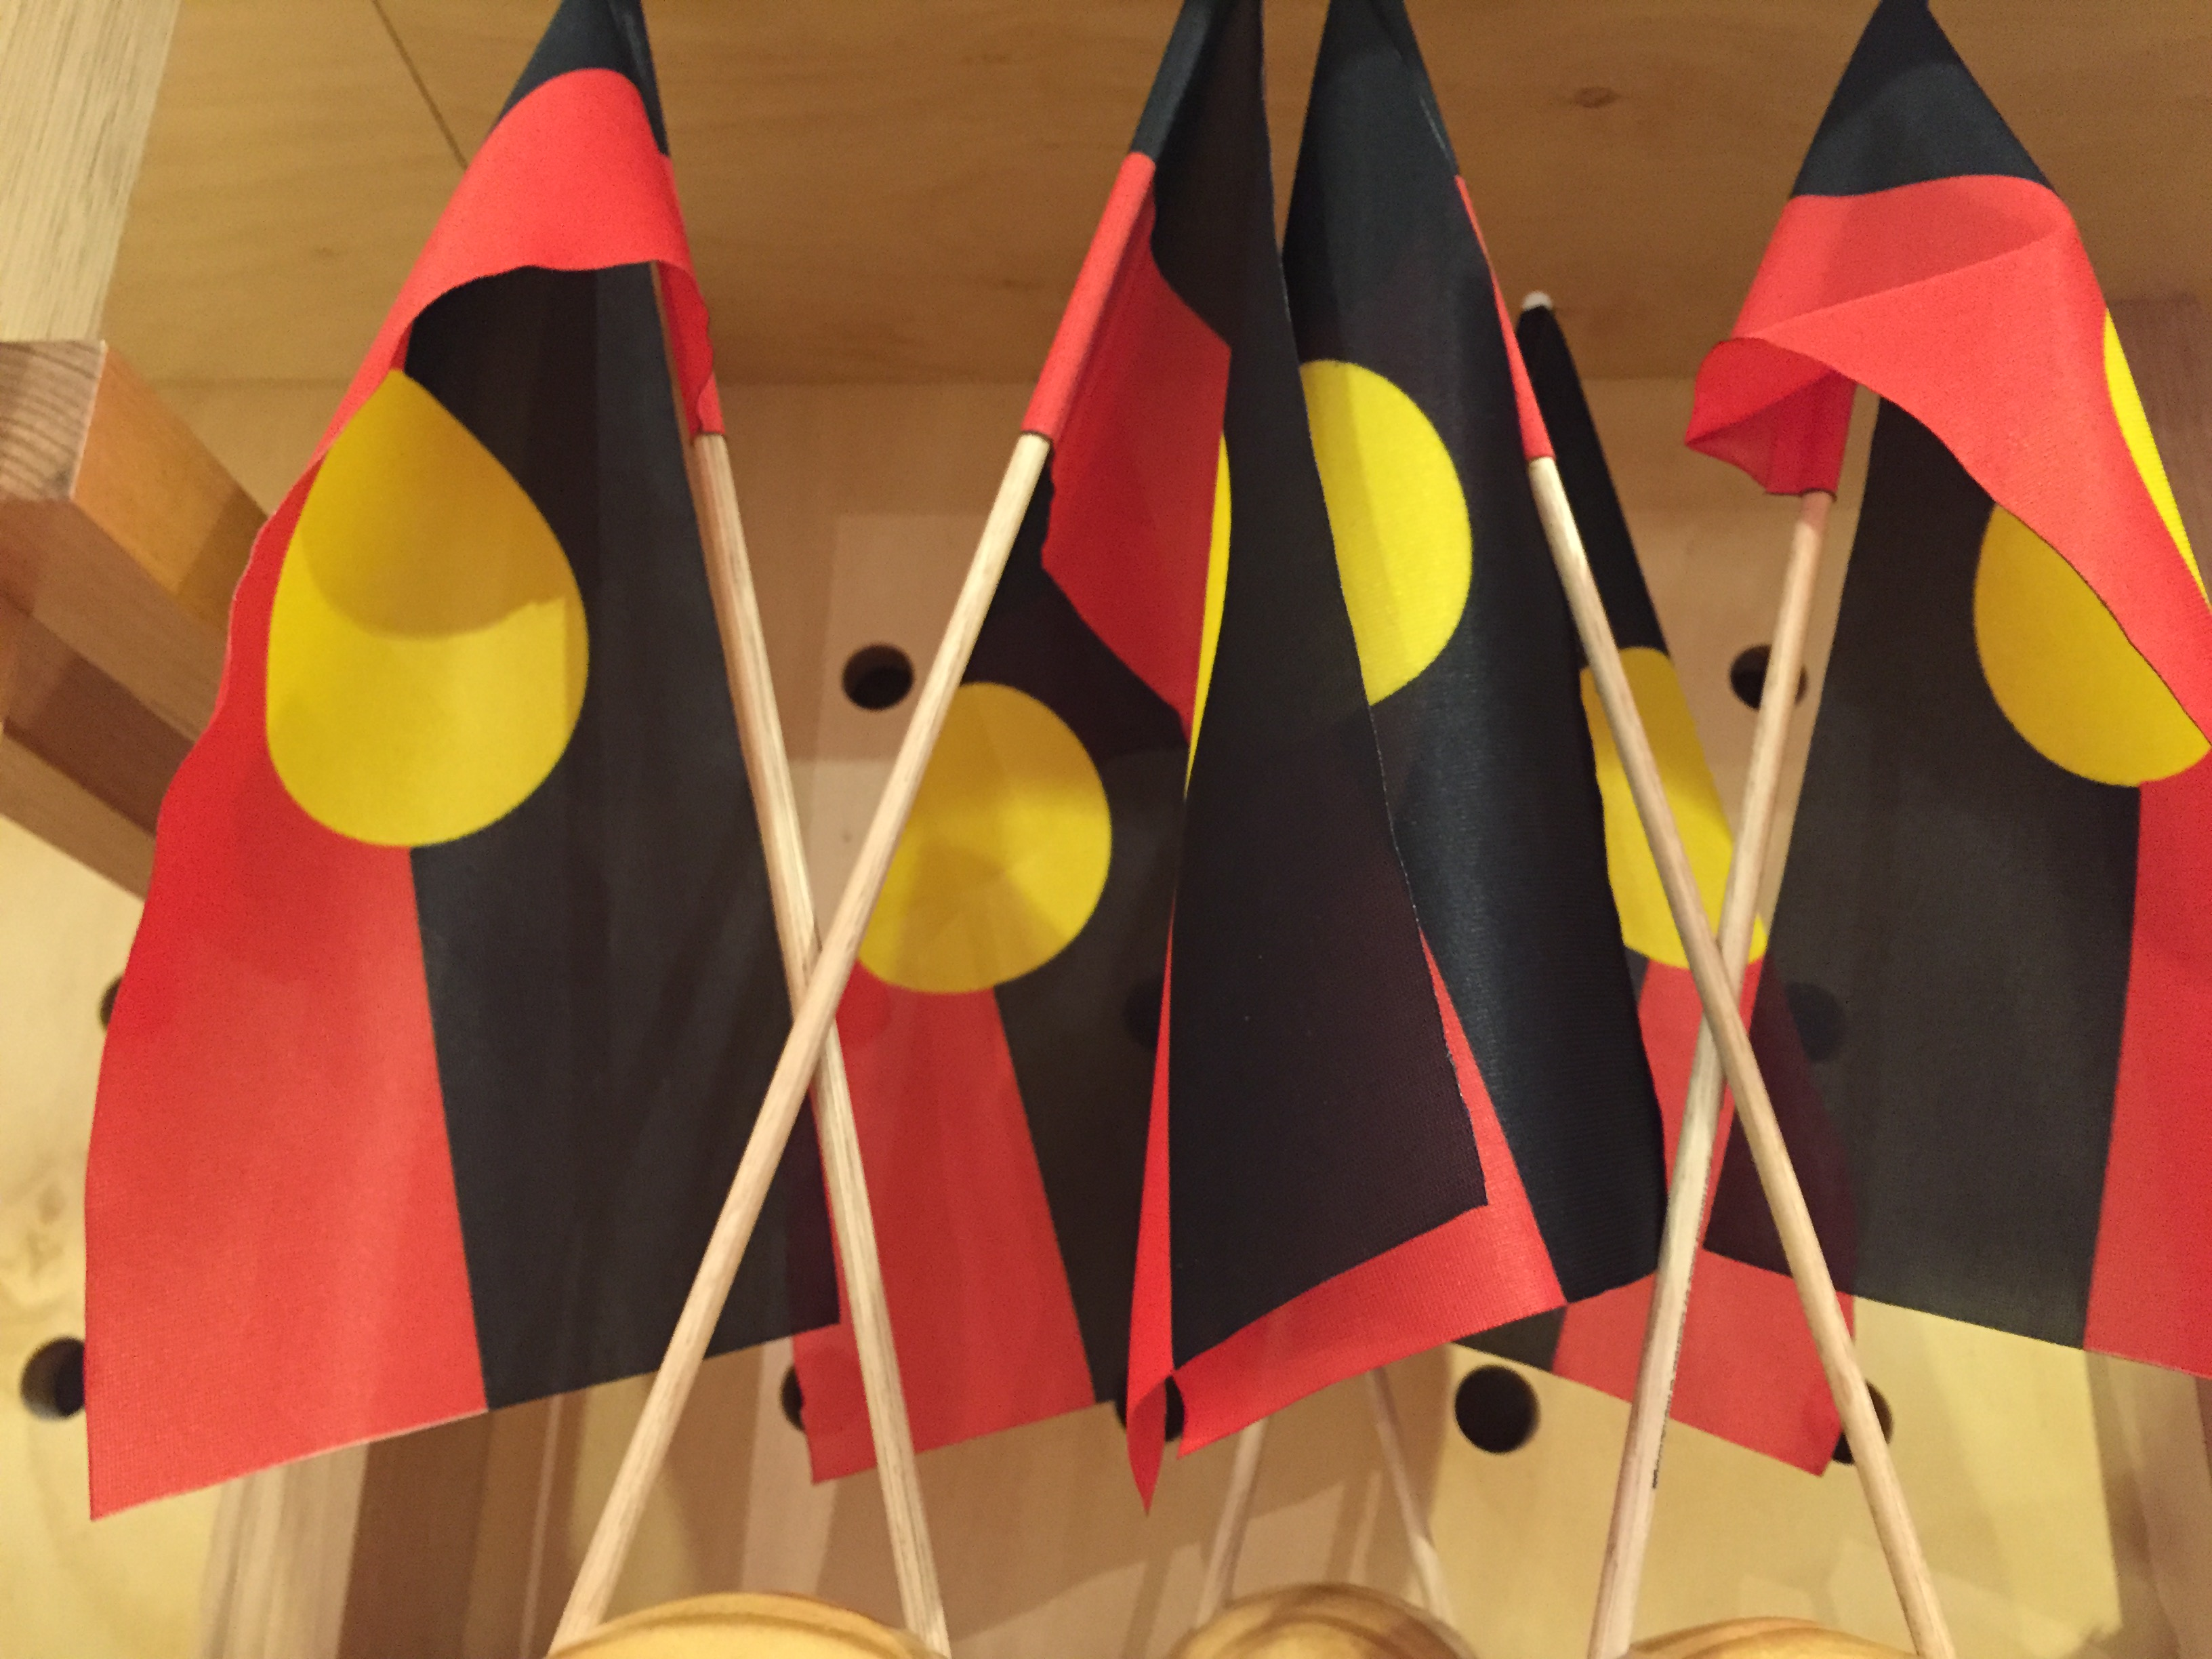 Avoiding 'Othering': How should disability policy be established with Indigenous people?